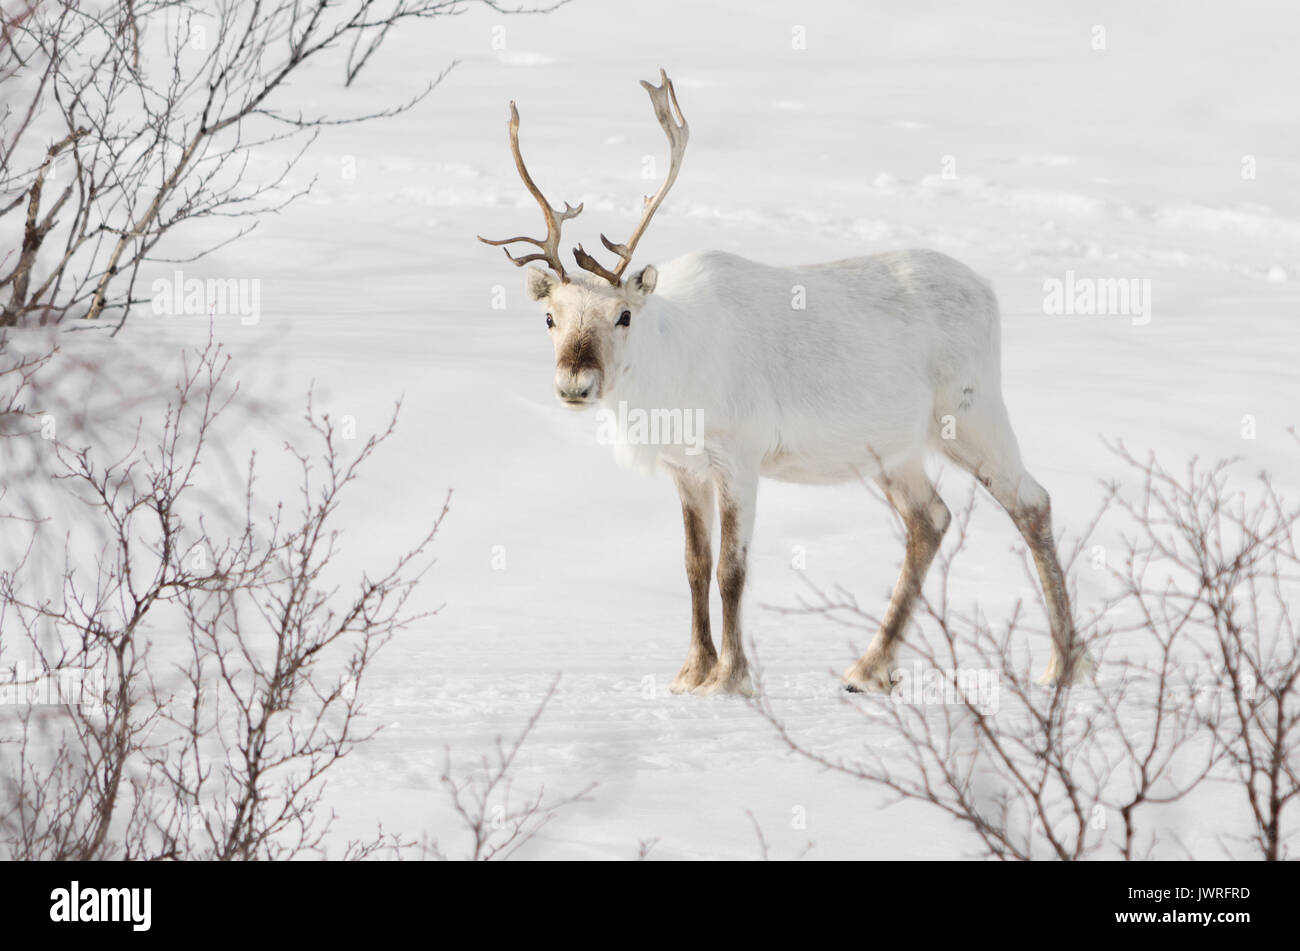 White reindeer in snow standing and watch - Stock Image